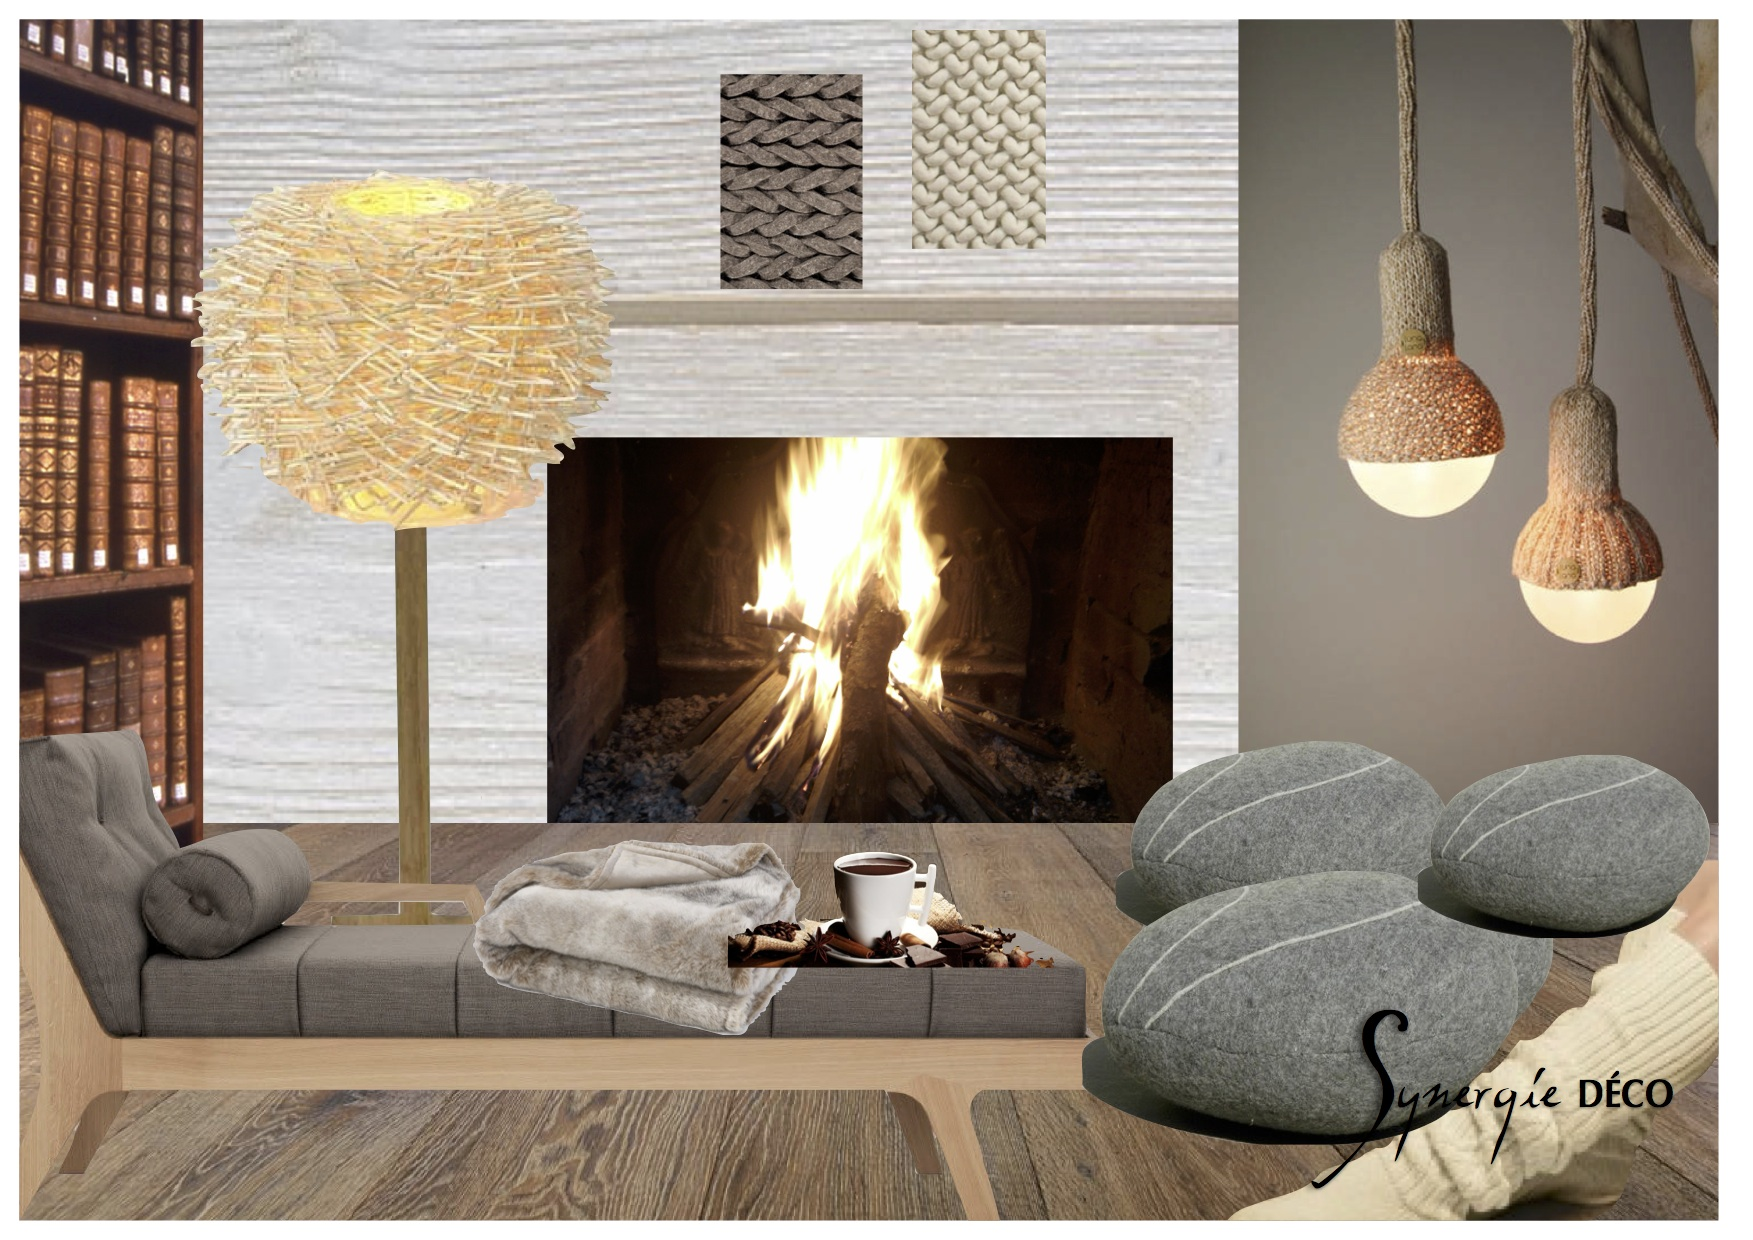 planches ambiance - synergie déco